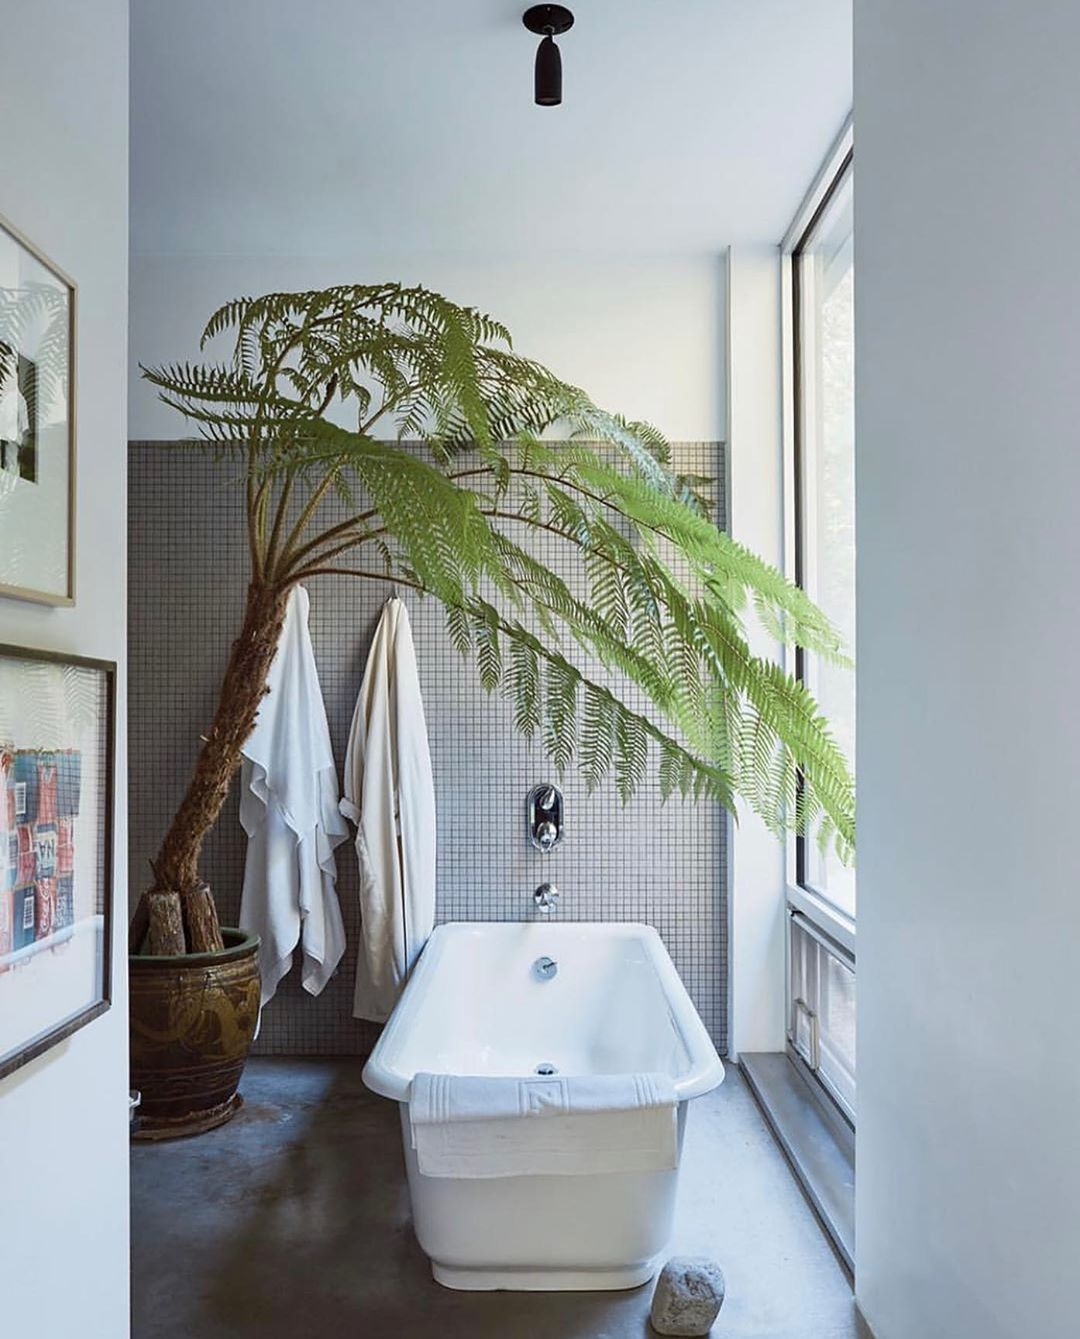 Roomoftheday In The Master Bathroom Of The Artist Jackceglic S Home In Easthampton An Australian Tre Hamptons House Australian Tree Fern Bathrooms Remodel